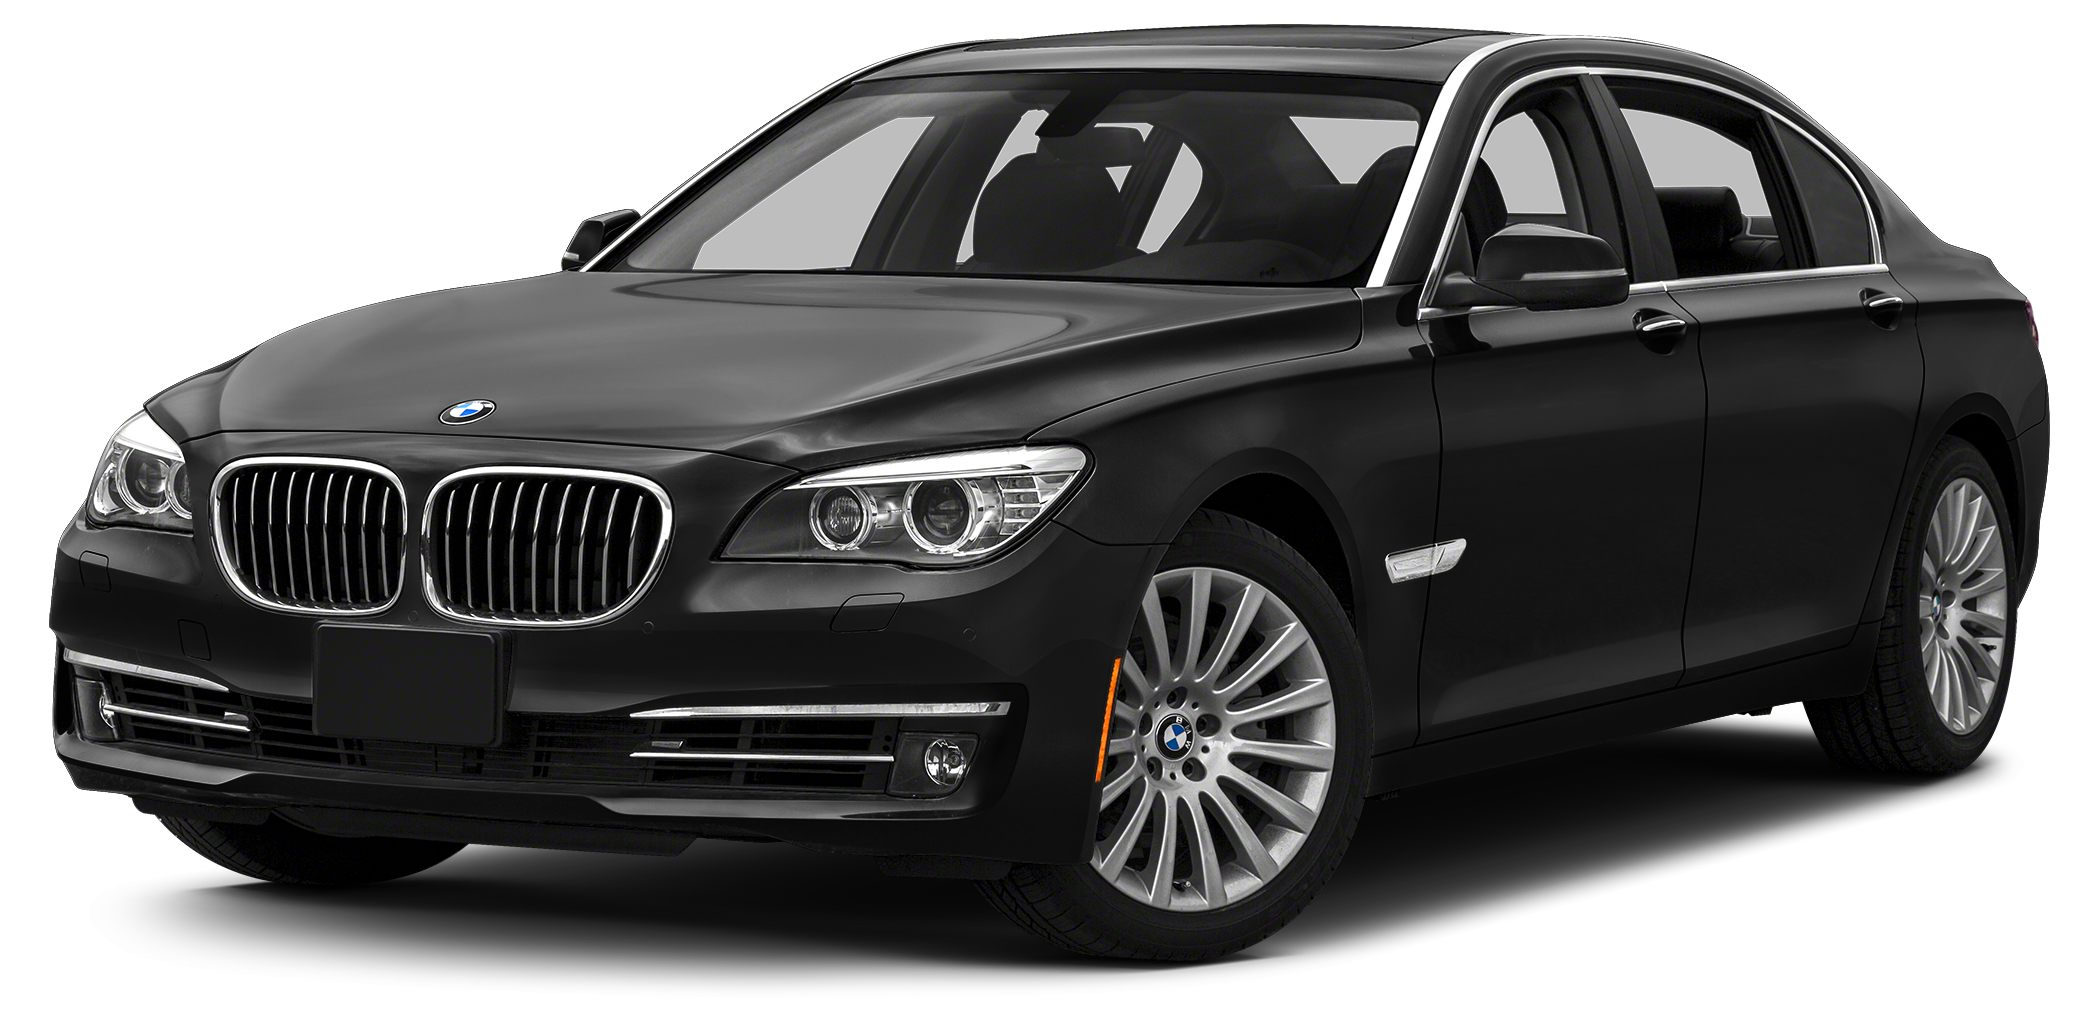 2013 BMW 7 Series 740i HAGGLE FREE PRICE SPORT PACKAGE VERY CLEAN WELL MAINTAINED AUTO LEVELIN